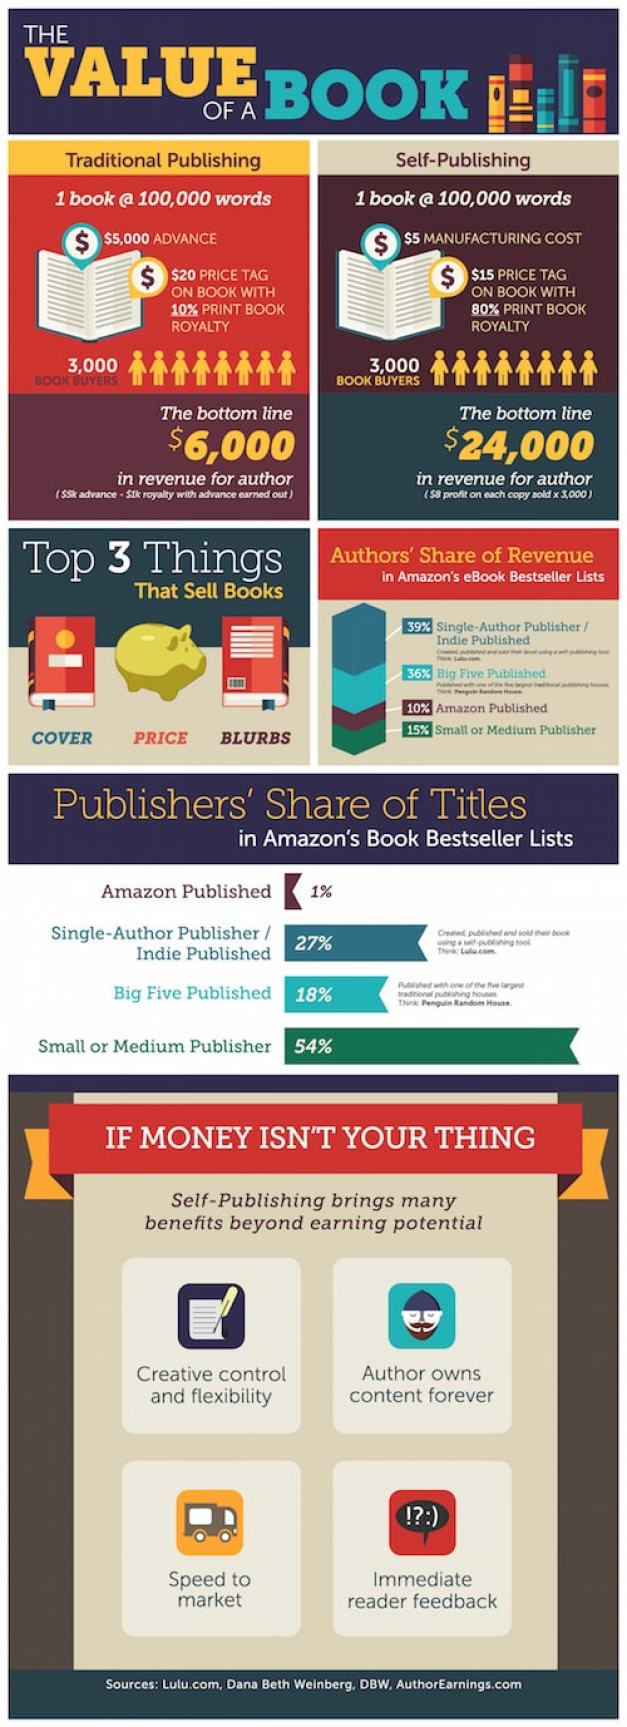 https://i0.wp.com/the-digital-reader.com/wp-content/uploads/2015/03/Blog-Infographic1.jpg?resize=627%2C1727